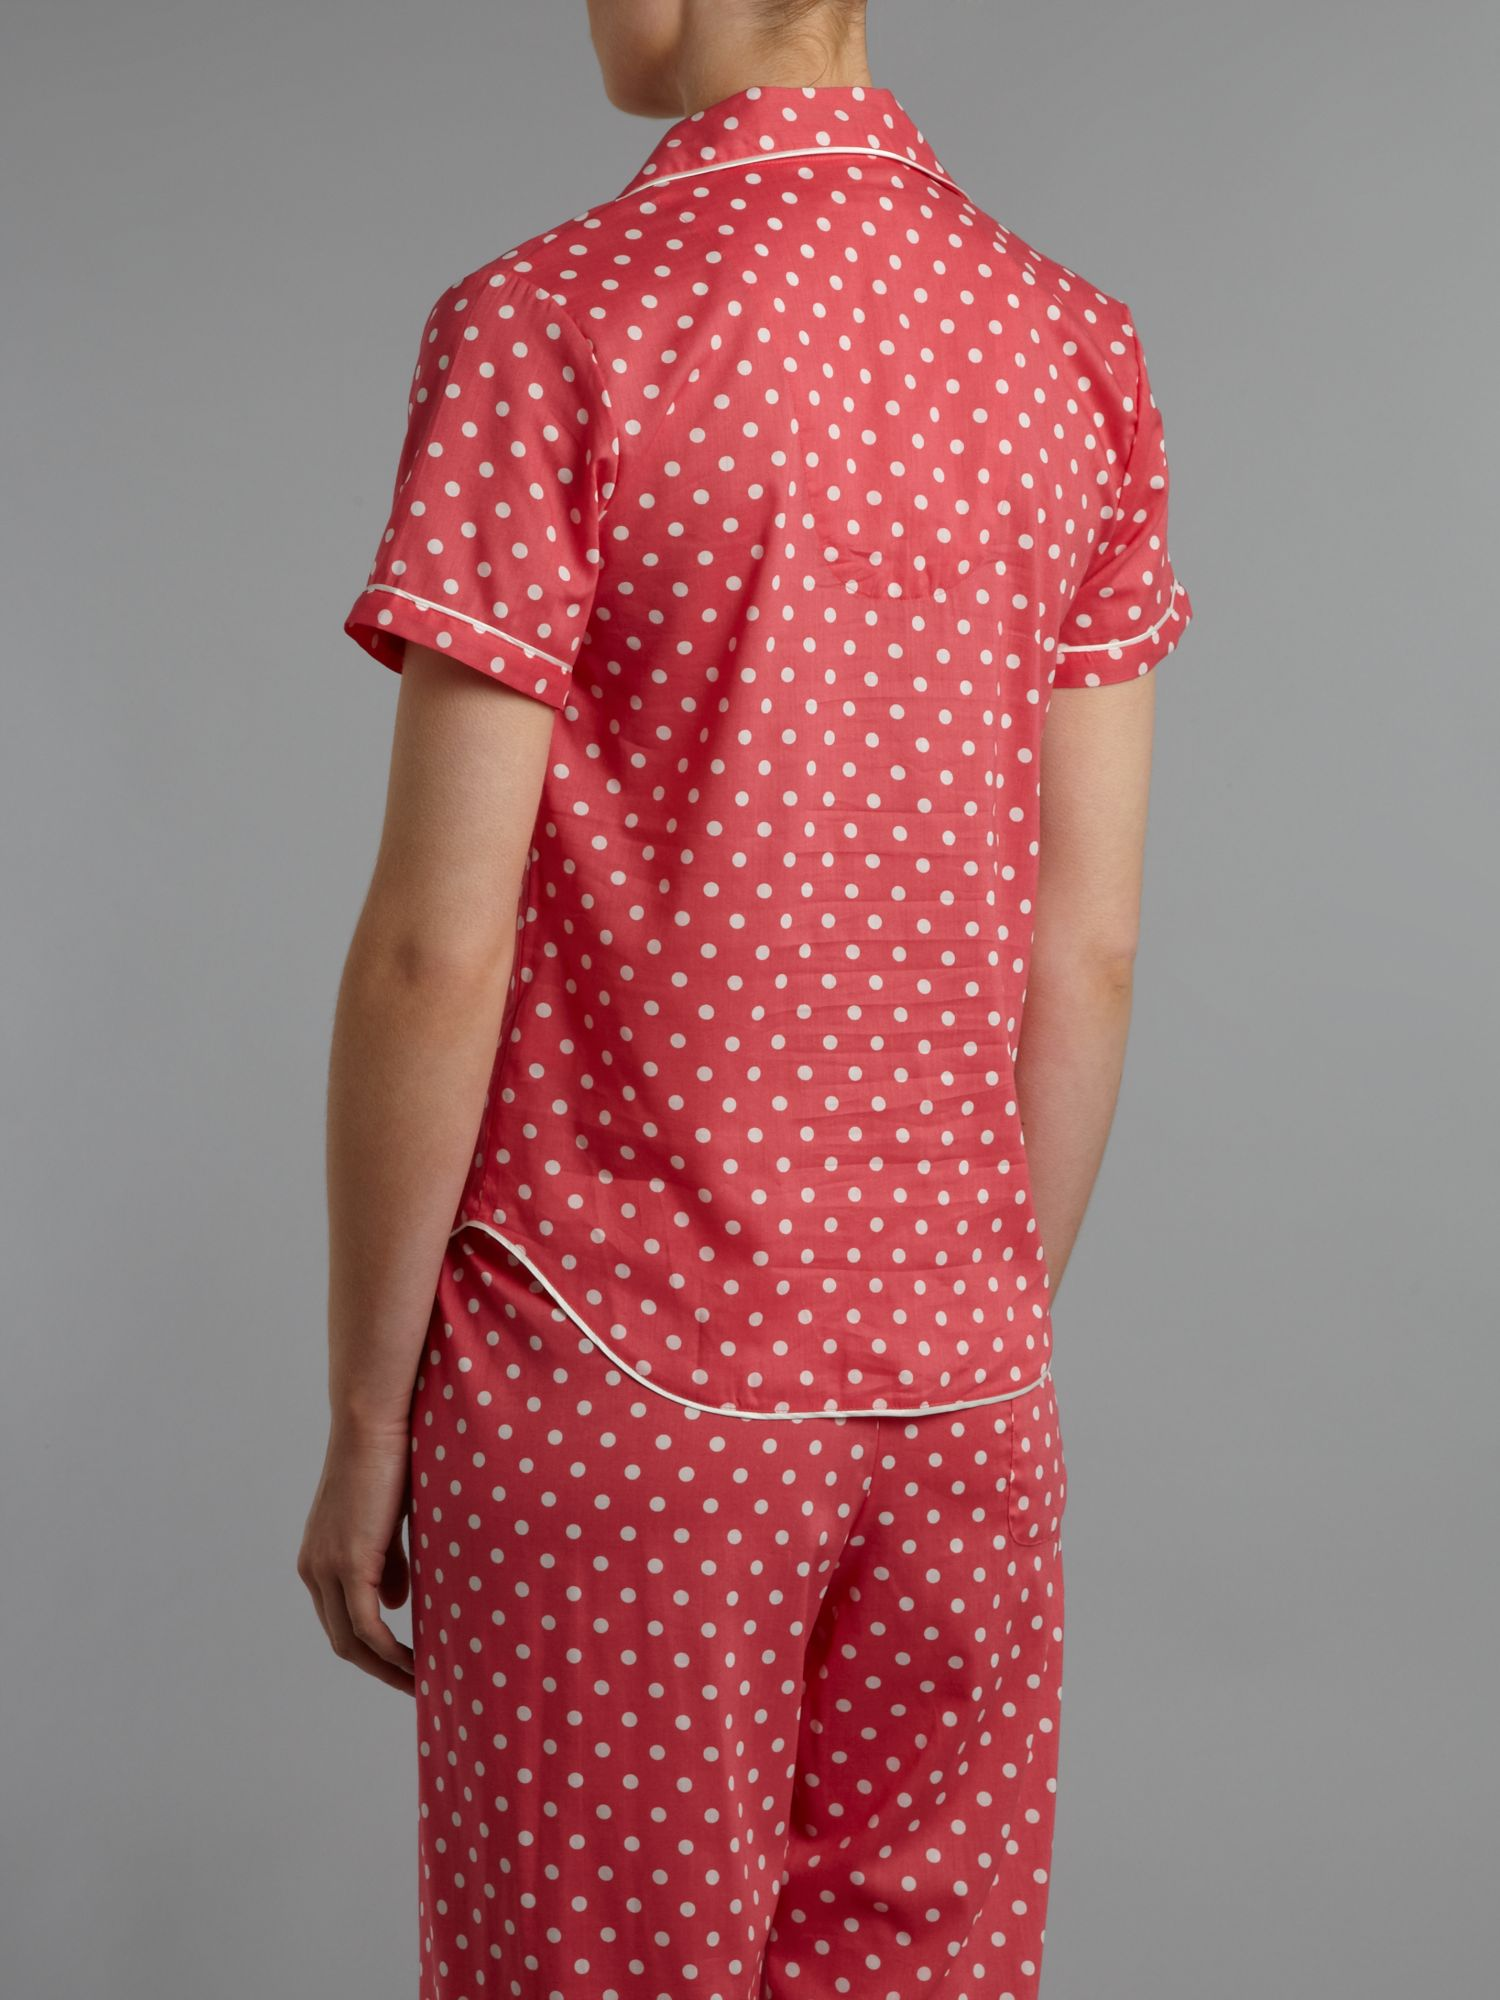 Spot PJ Short Sleeve Top